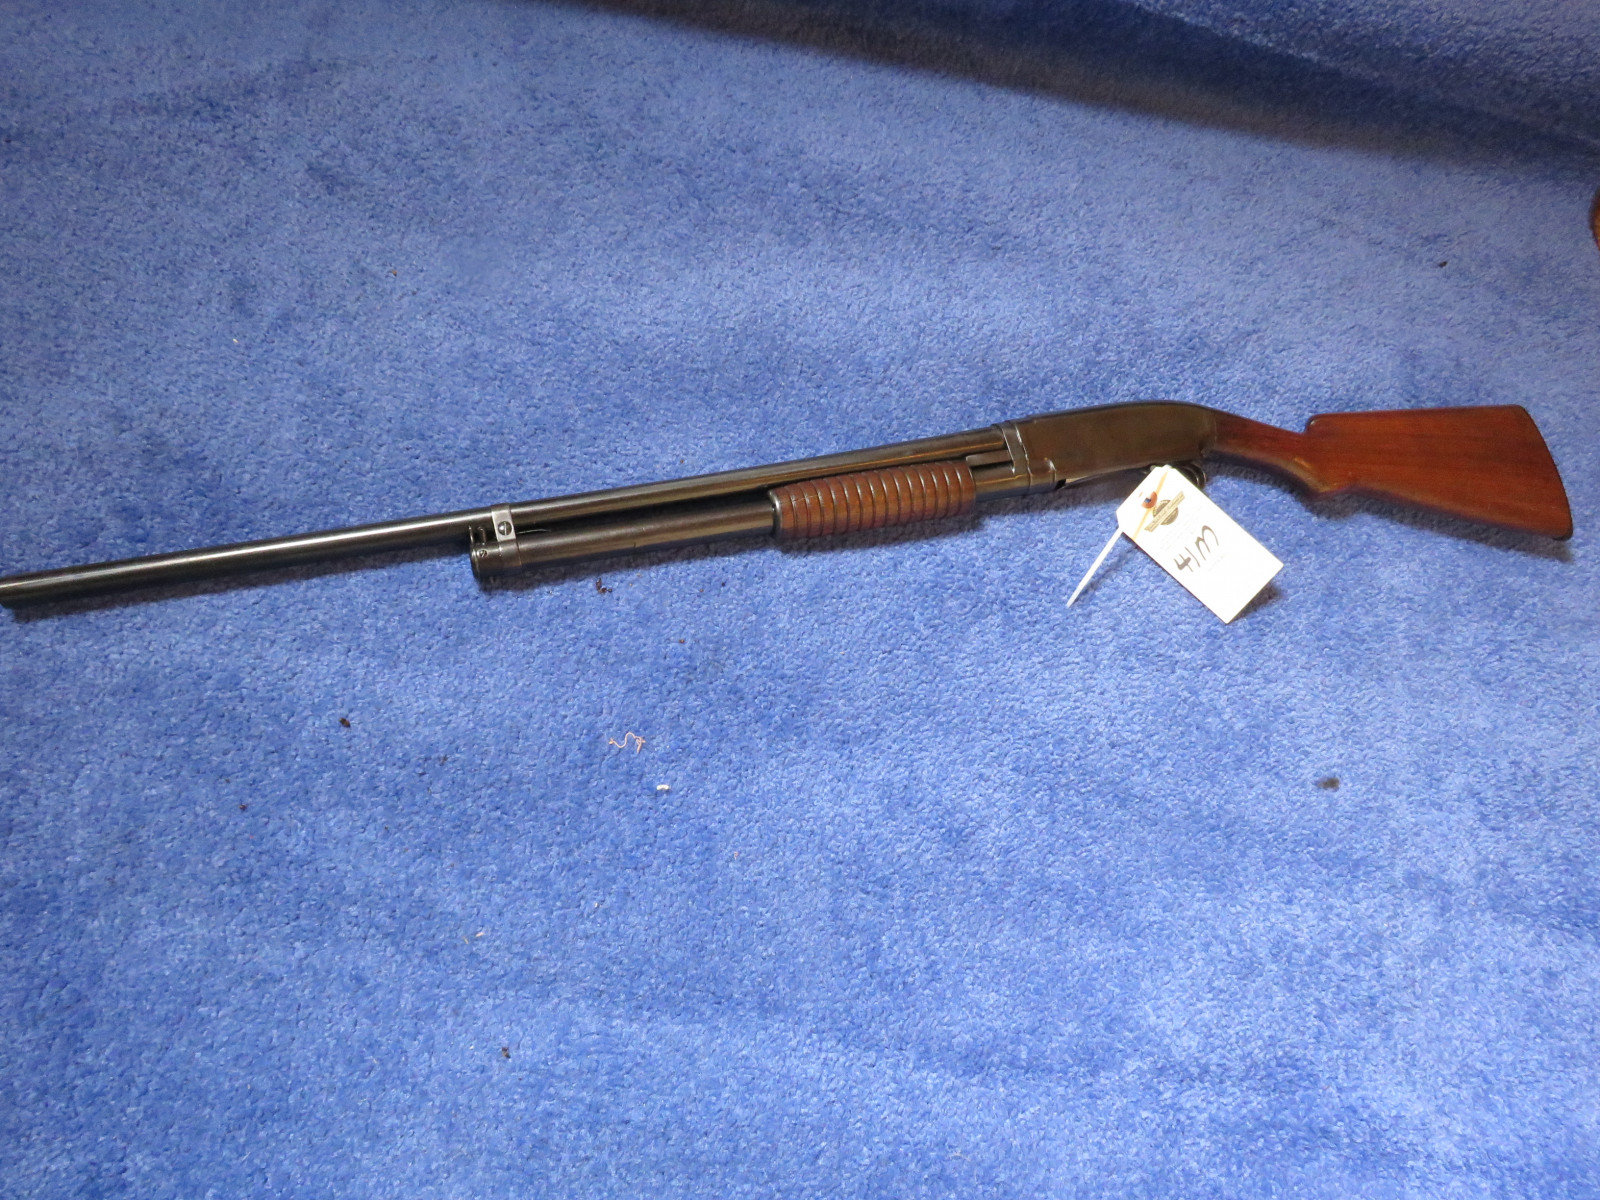 Winchester Model 1912 16 Gauge Shotgun - Image 2